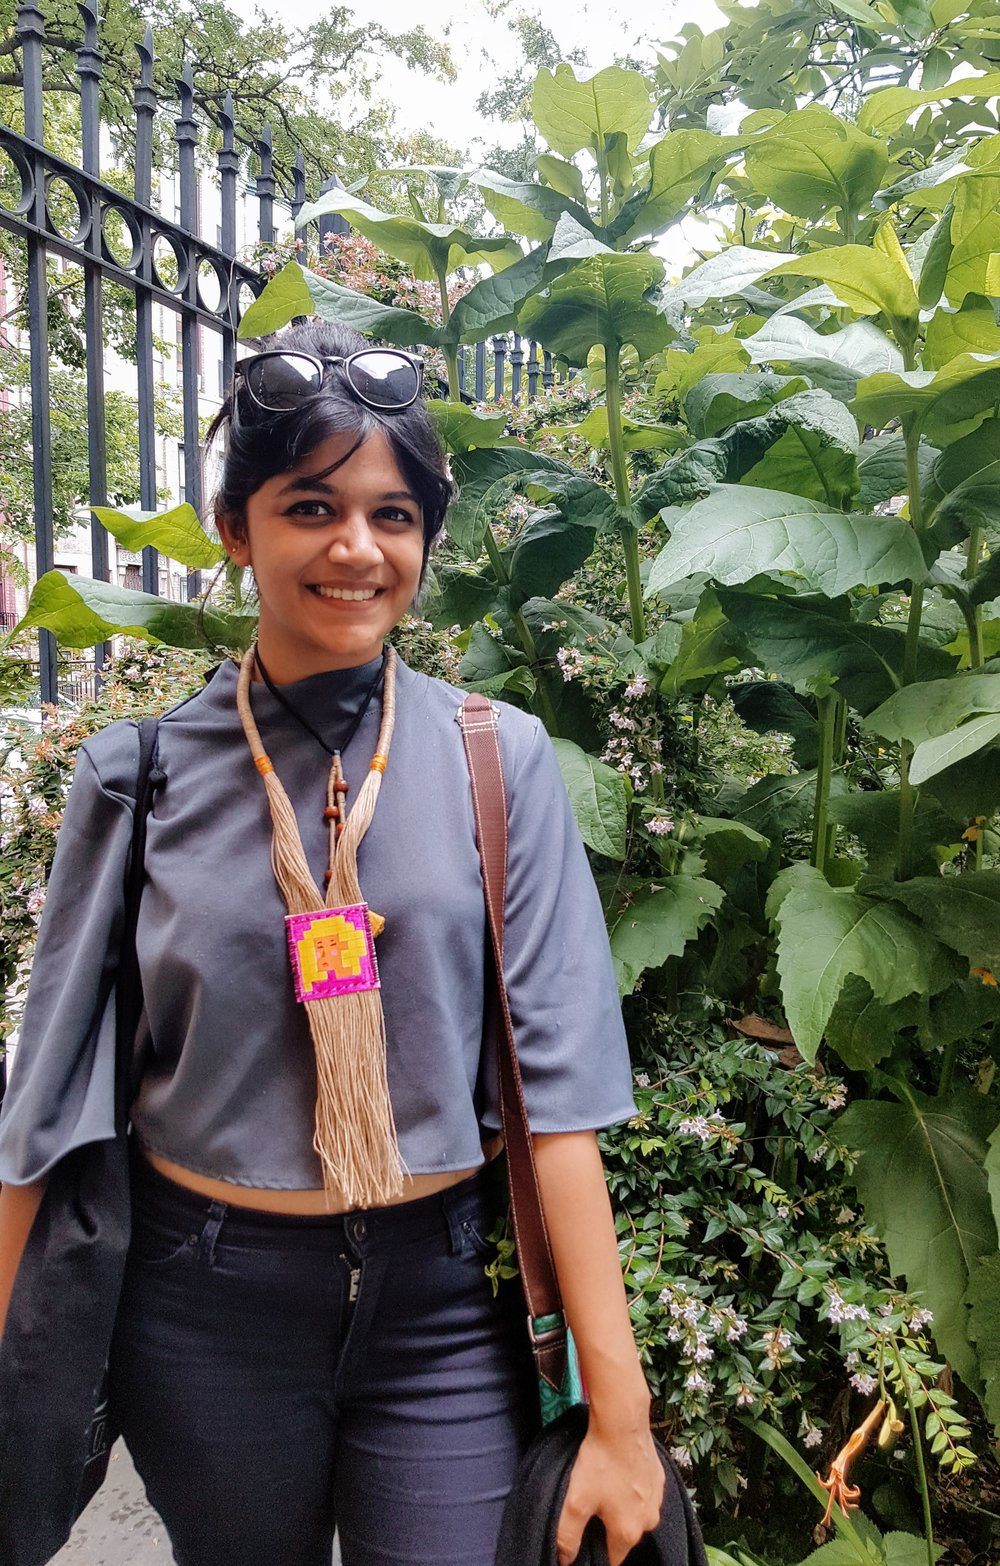 Diti Mistry, pictured above wearing one of her handmade necklaces in Brooklyn, NY - June 2017. Photo: Lauren A. Oosterlinck